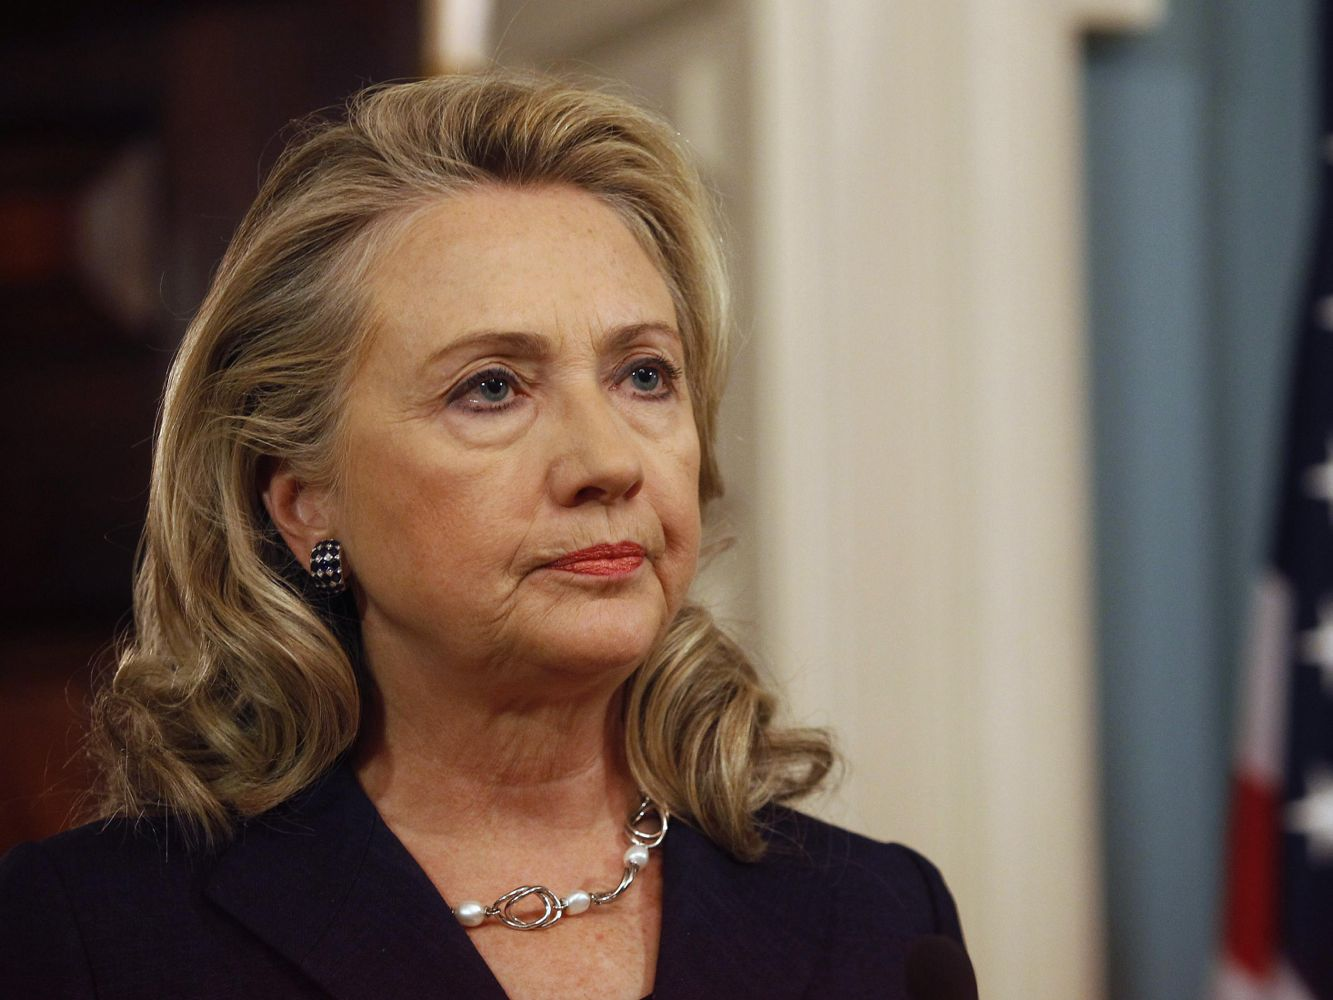 Image: File of U.S. Secretary of State Hillary Clinton delivering remarks at the State Department  in Washington